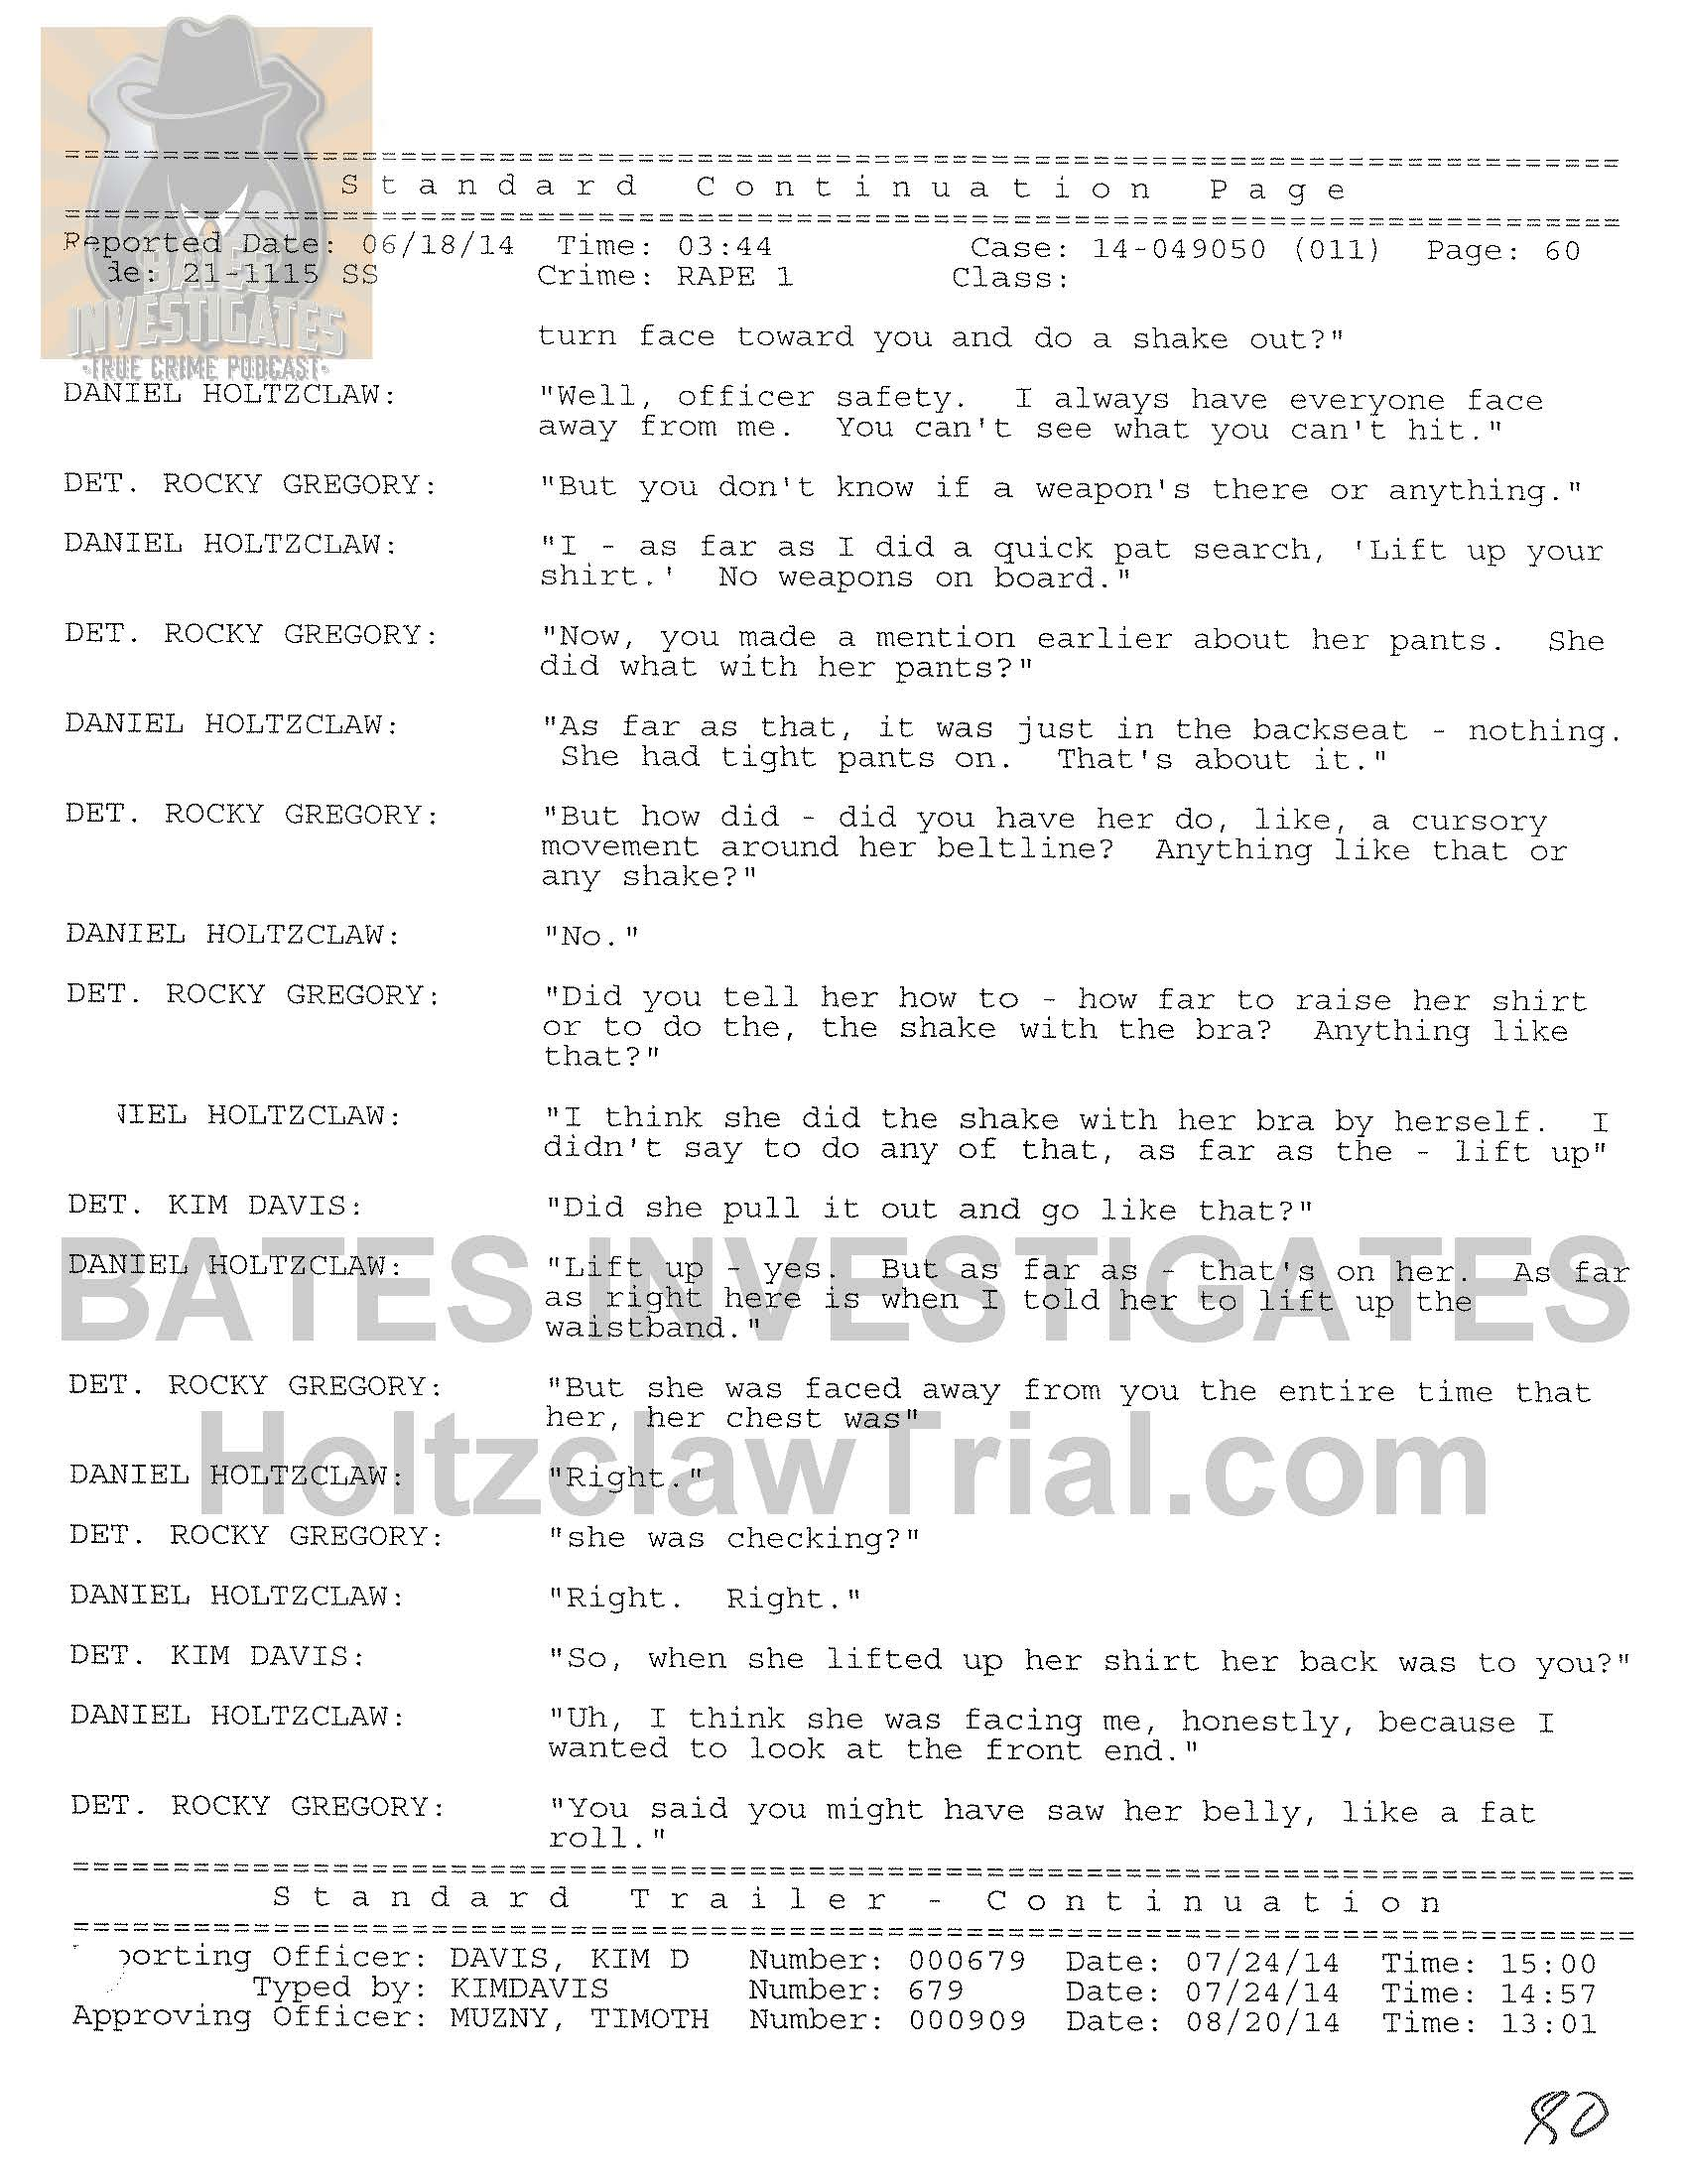 Holtzclaw Interrogation Transcript - Ep02 Redacted_Page_60.jpg